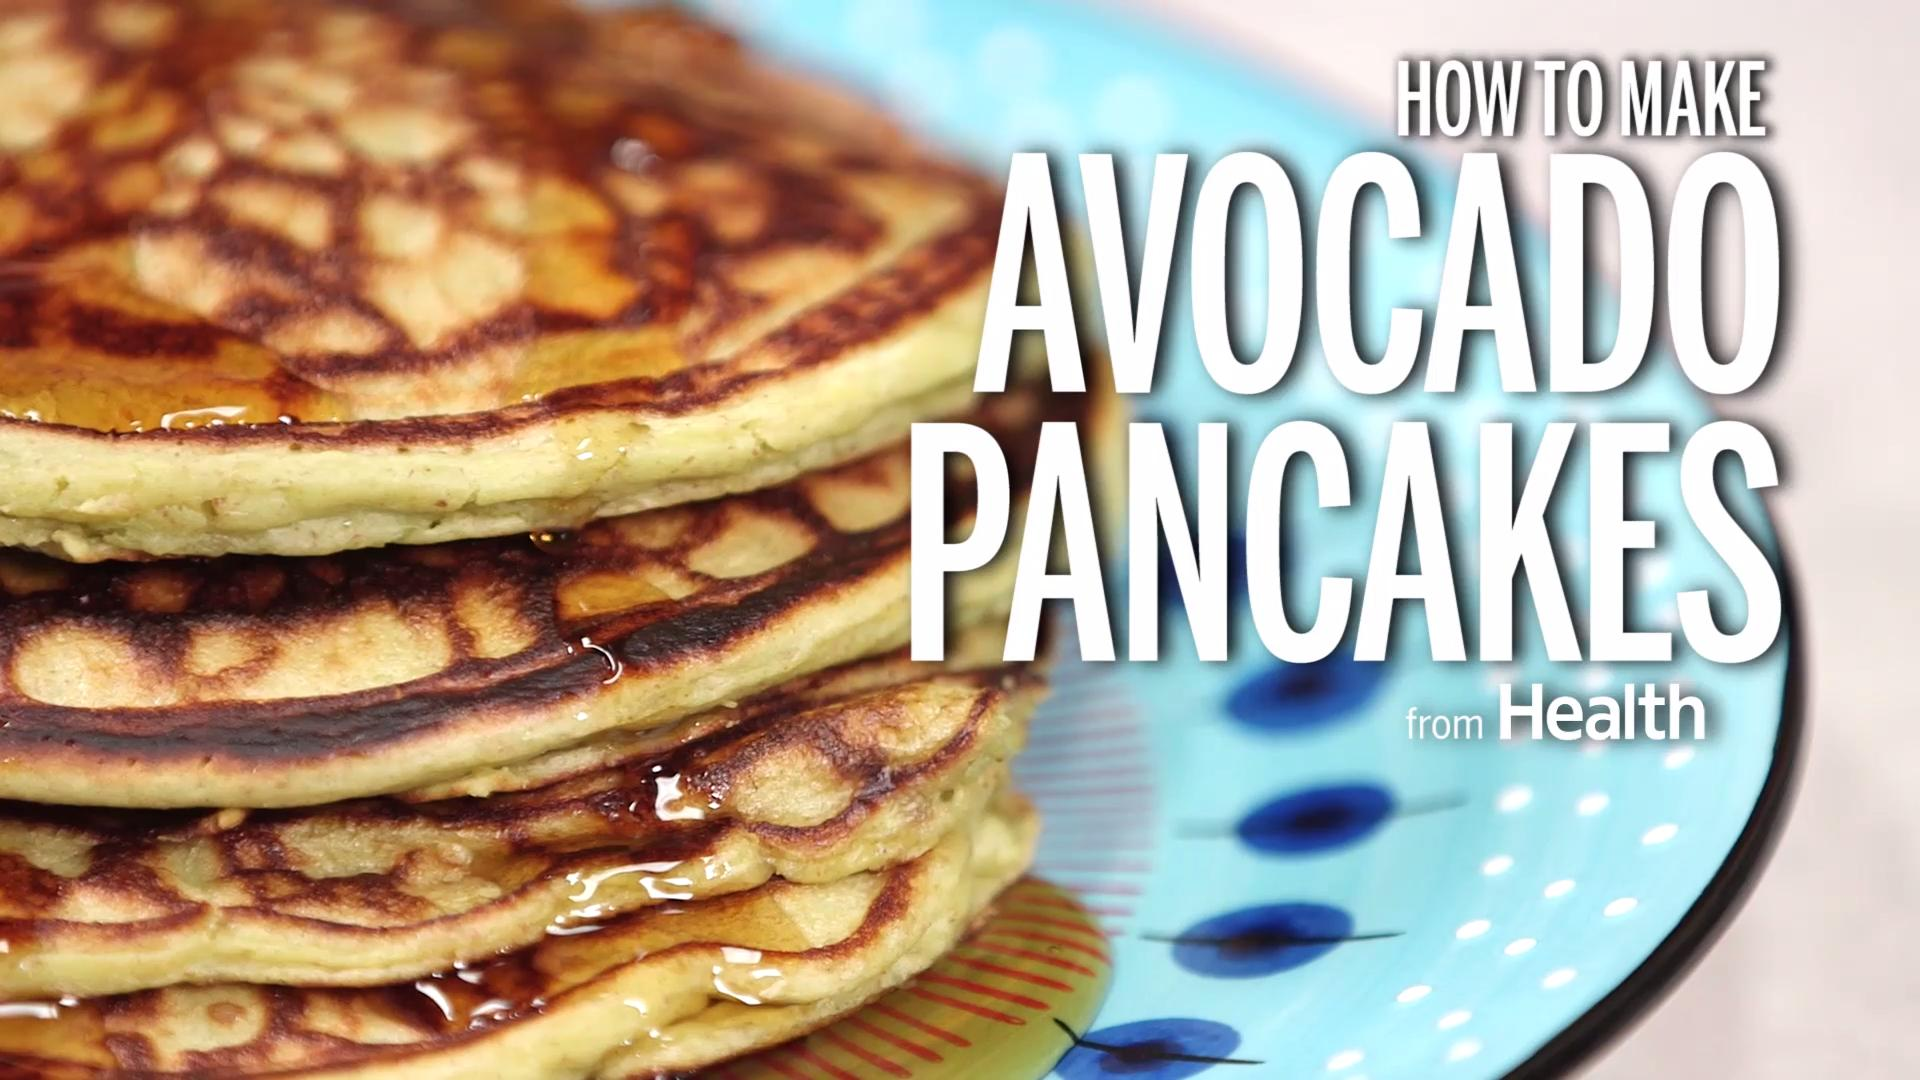 A Whole-Wheat Pancake Recipe That Uses Avocado